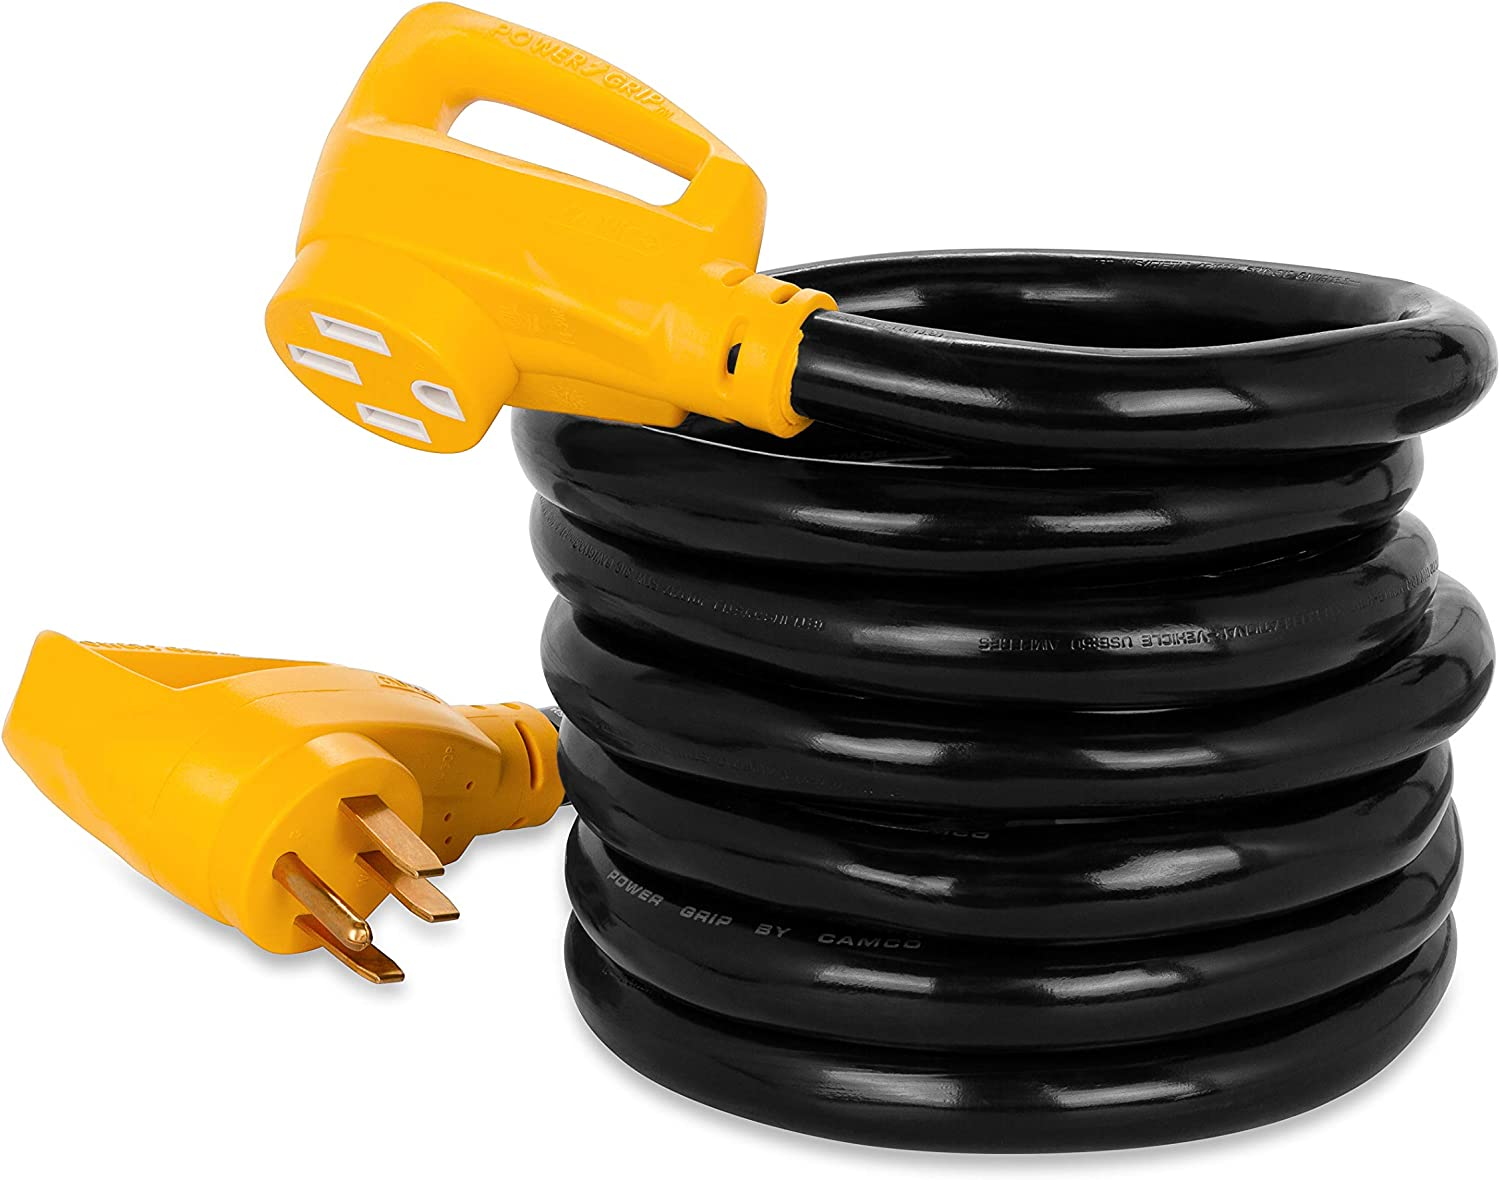 Camco 15' PowerGrip Heavy-Duty Outdoor 50-Amp Extension Cord for RV